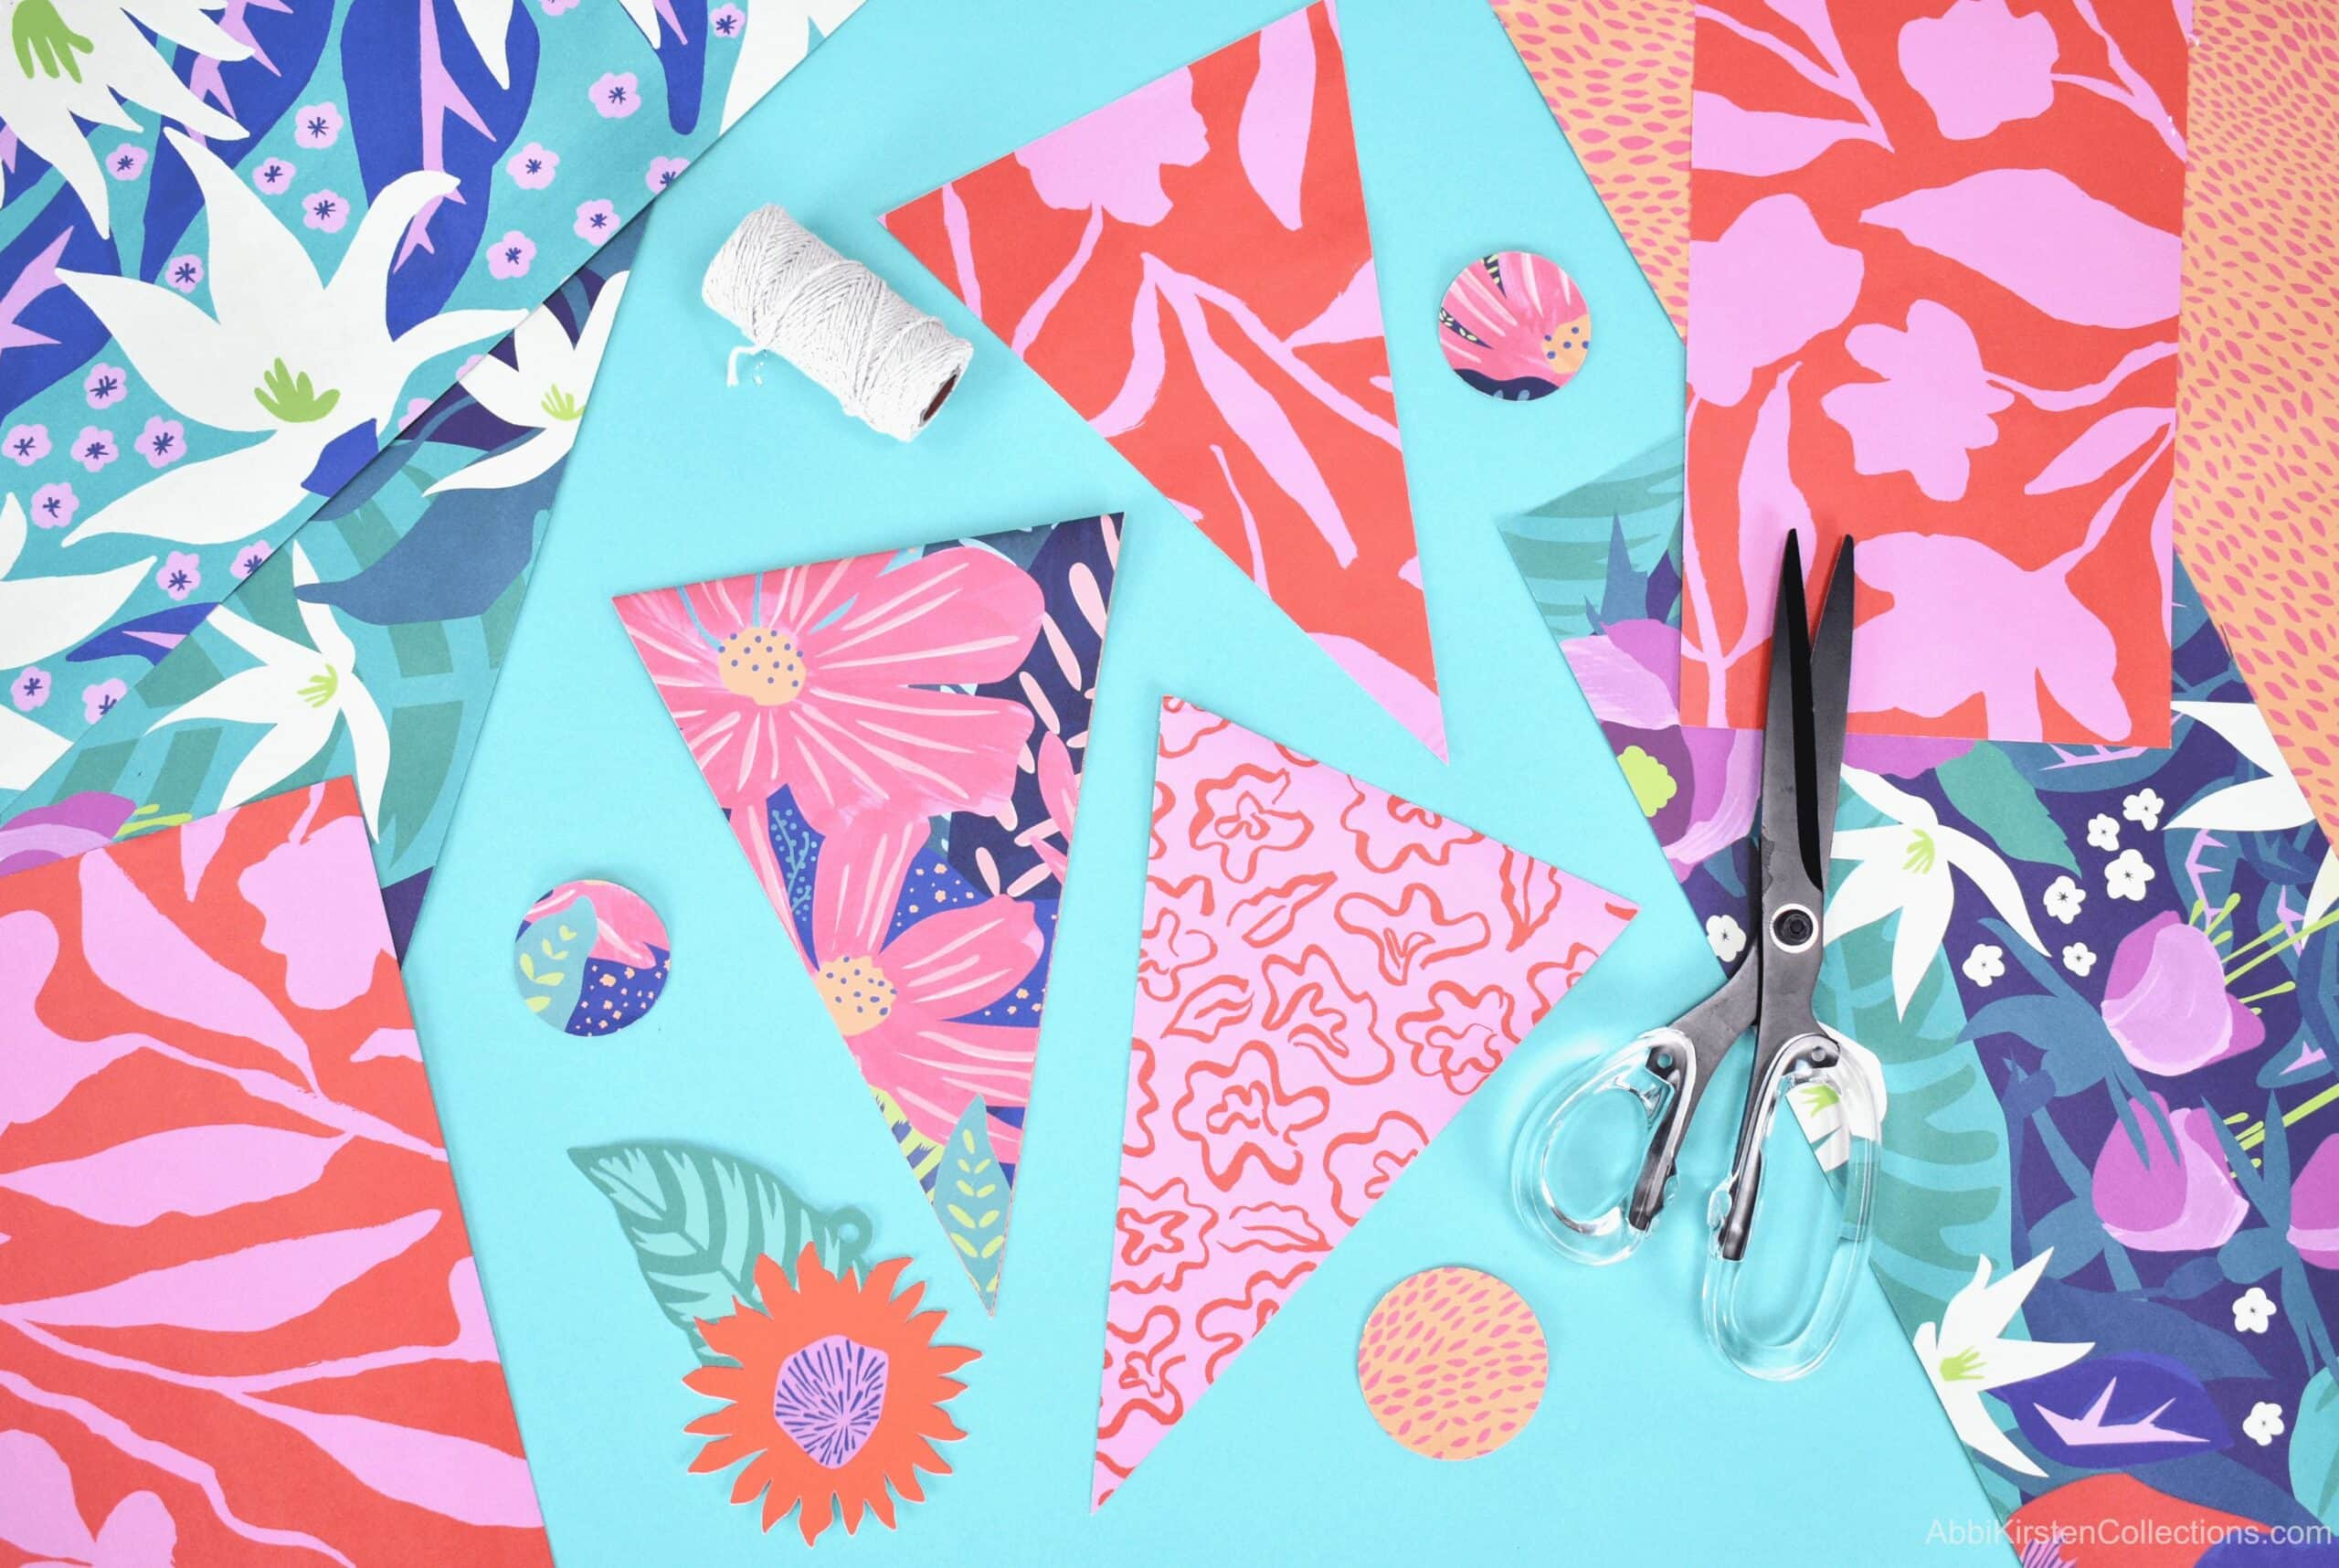 3 Genius Craft Projects To Make With Wrapping Paper